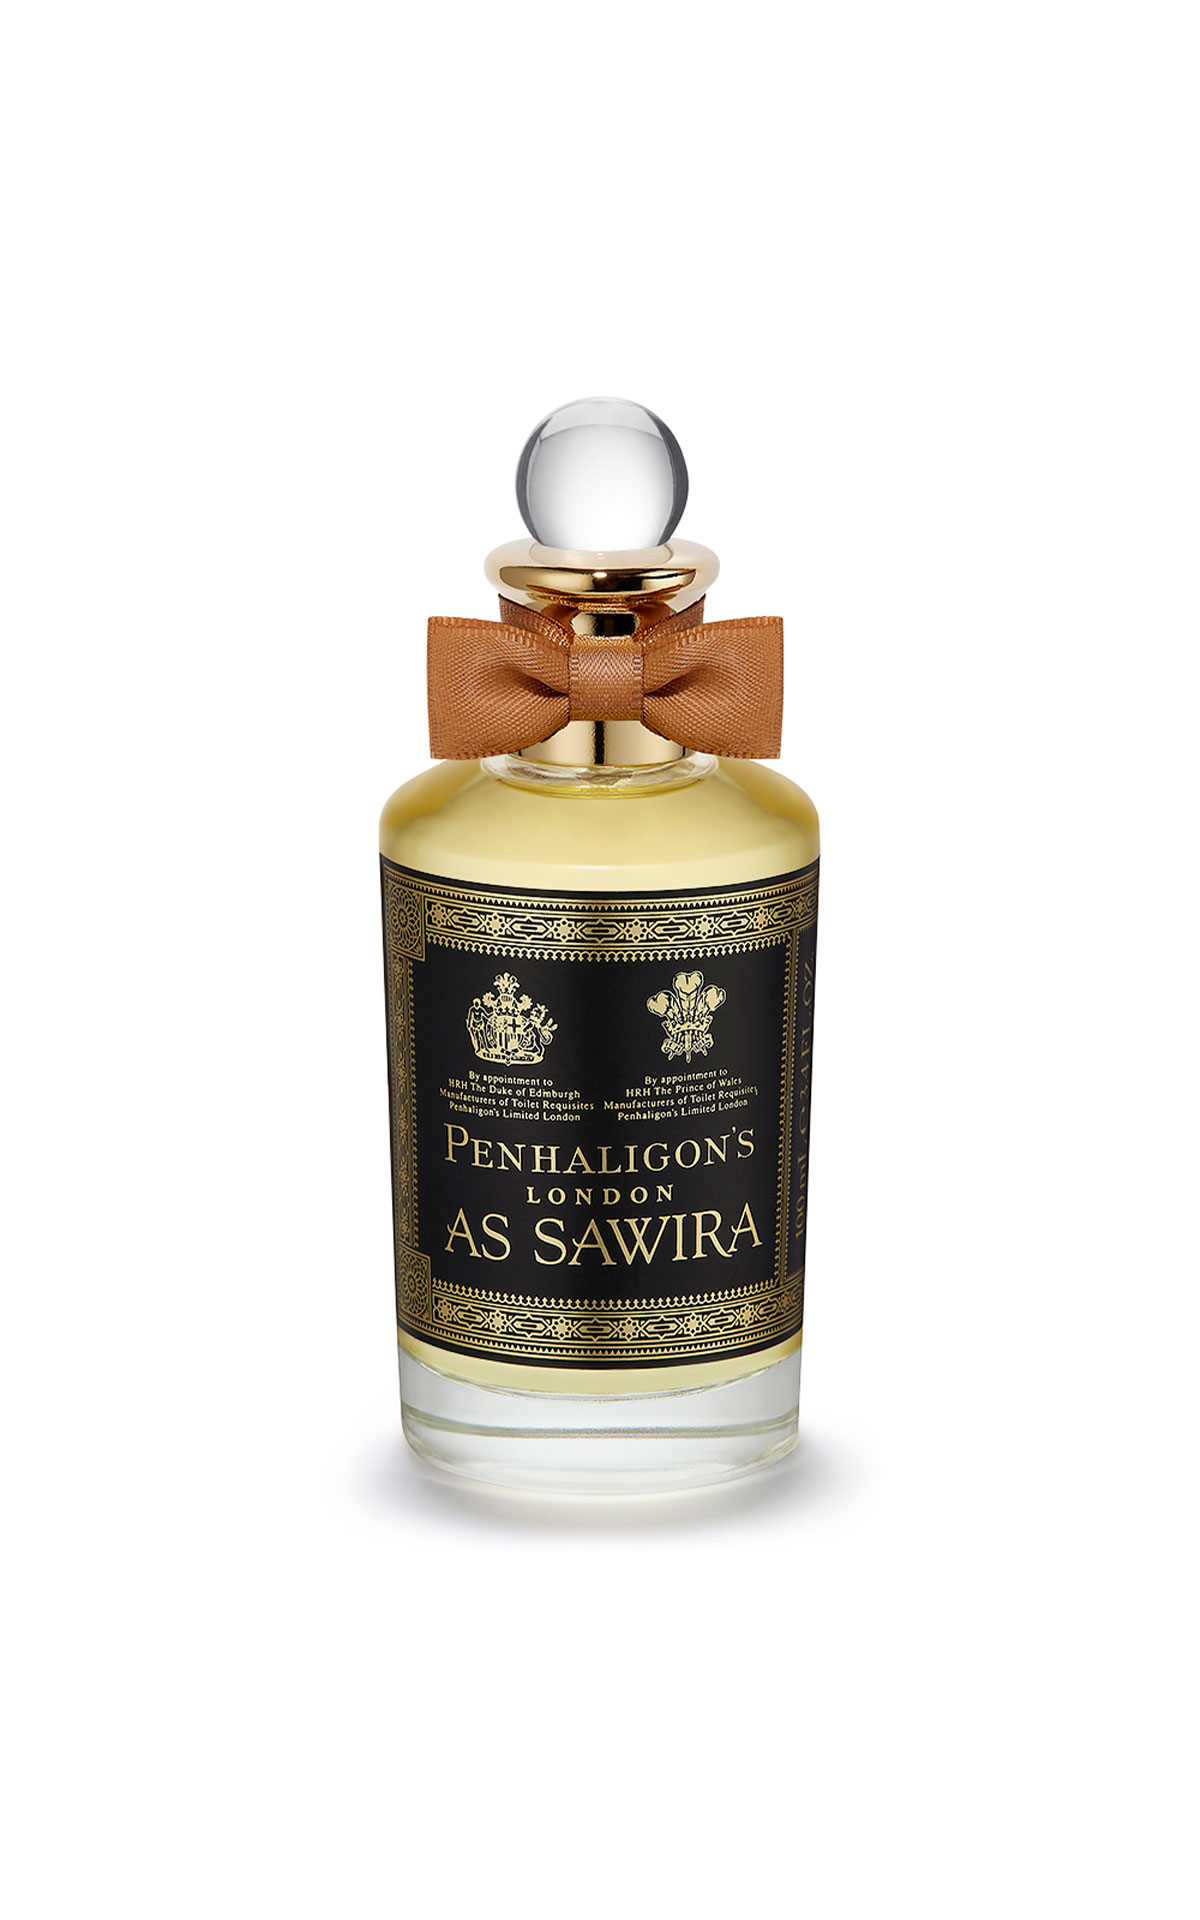 Penhaligon's As sawira eau de parfum from Bicester Village